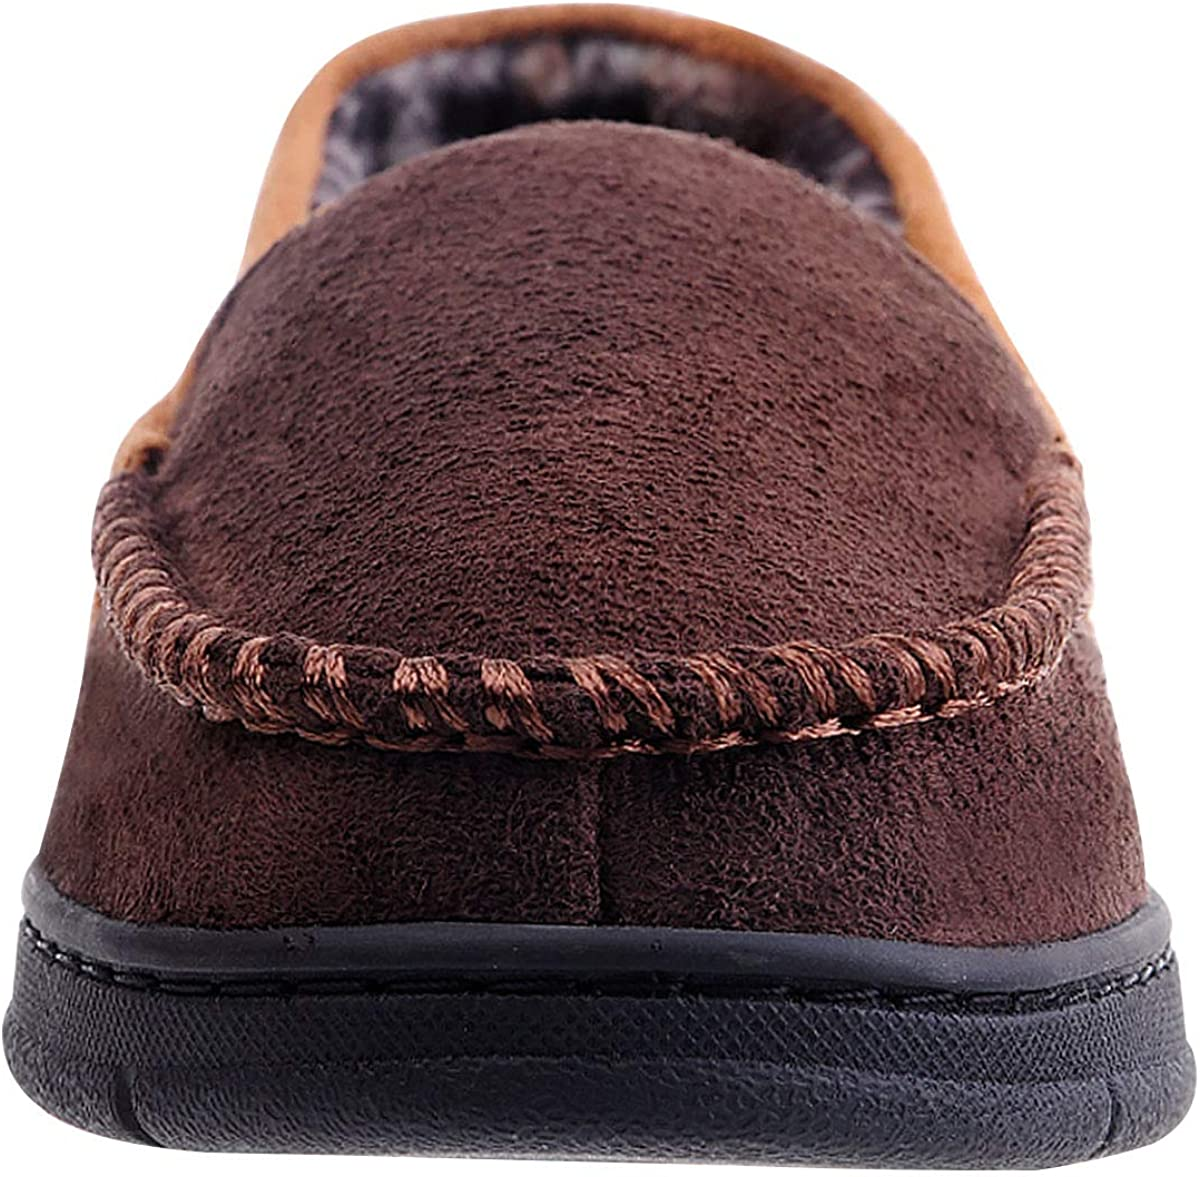 MIXIN Mens Moccasin Slippers Indoor Outdoor Loafer Shoes